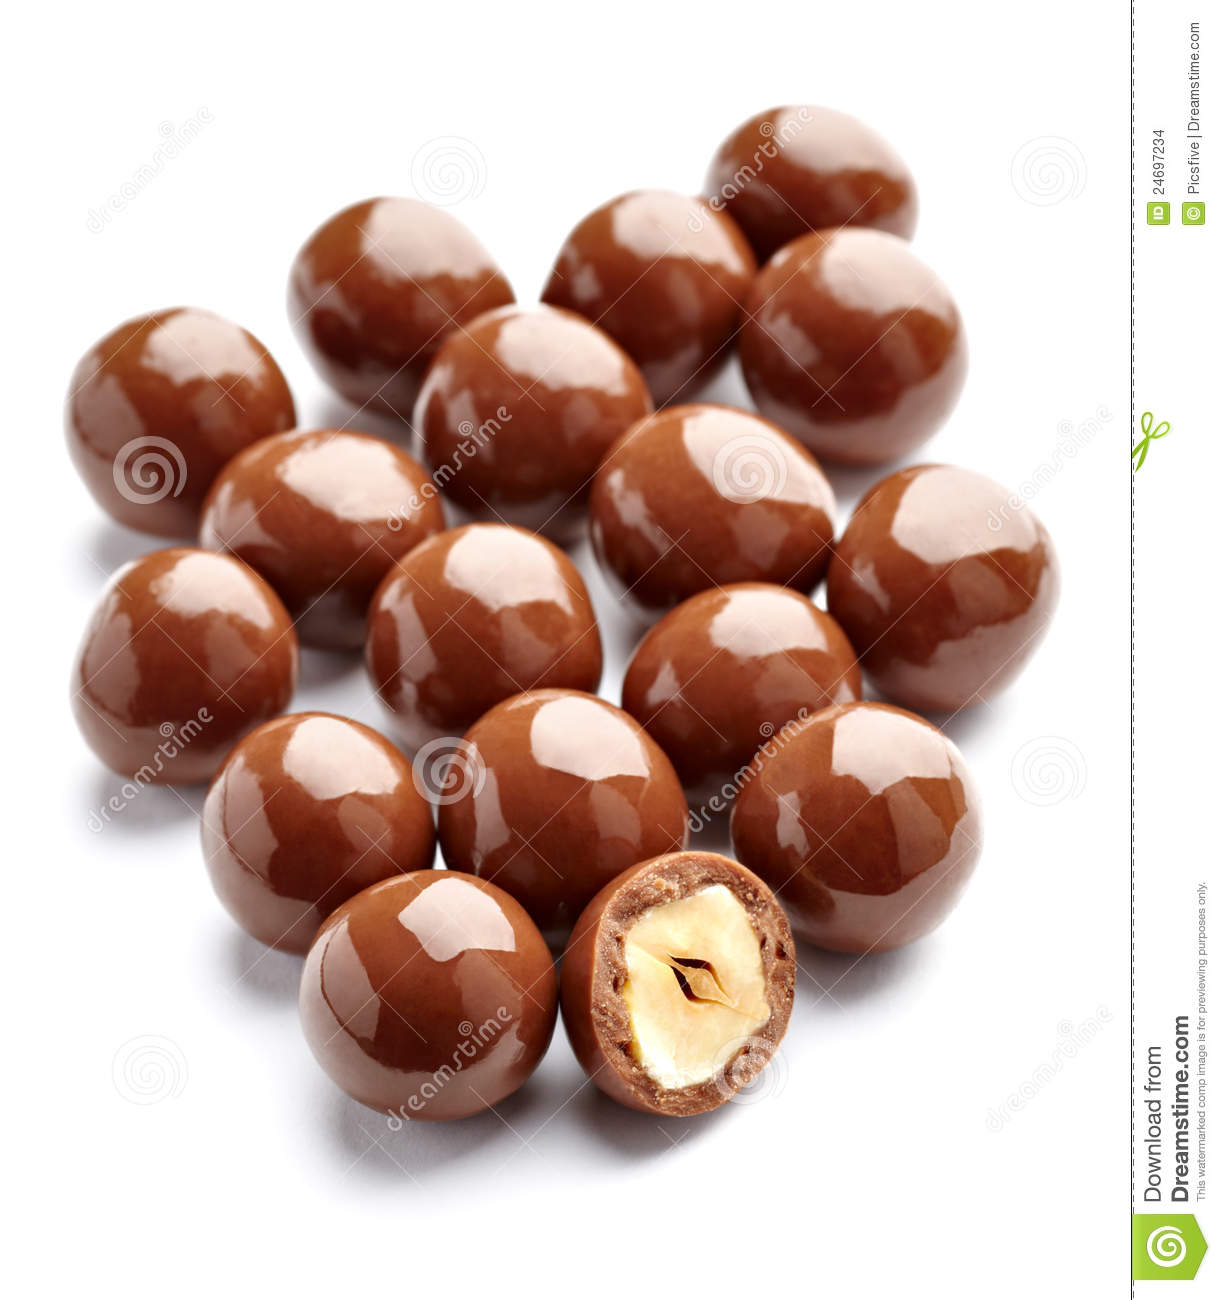 Chocolate Candy Stock Images - Image: 24697234